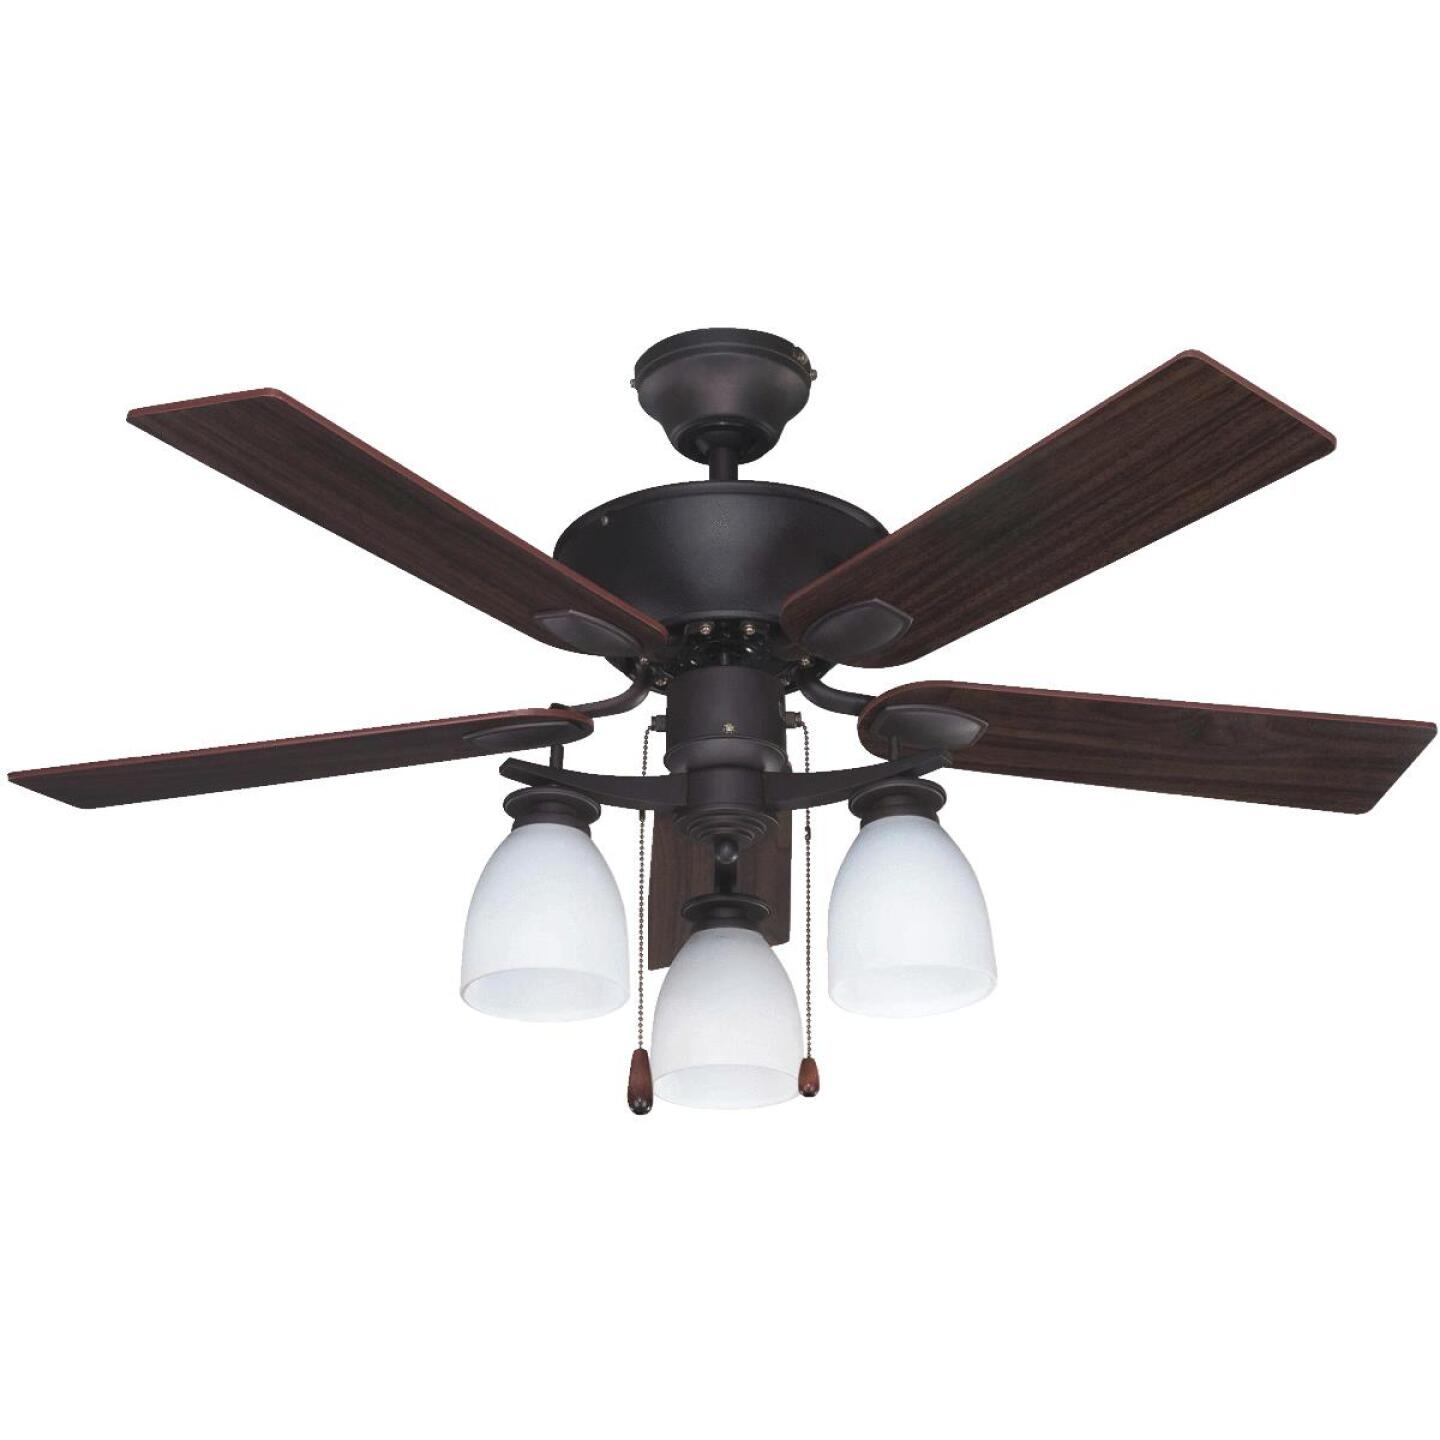 Home Impressions New Yorker 42 In. Oil Rubbed Bronze Ceiling Fan with Light Kit Image 1